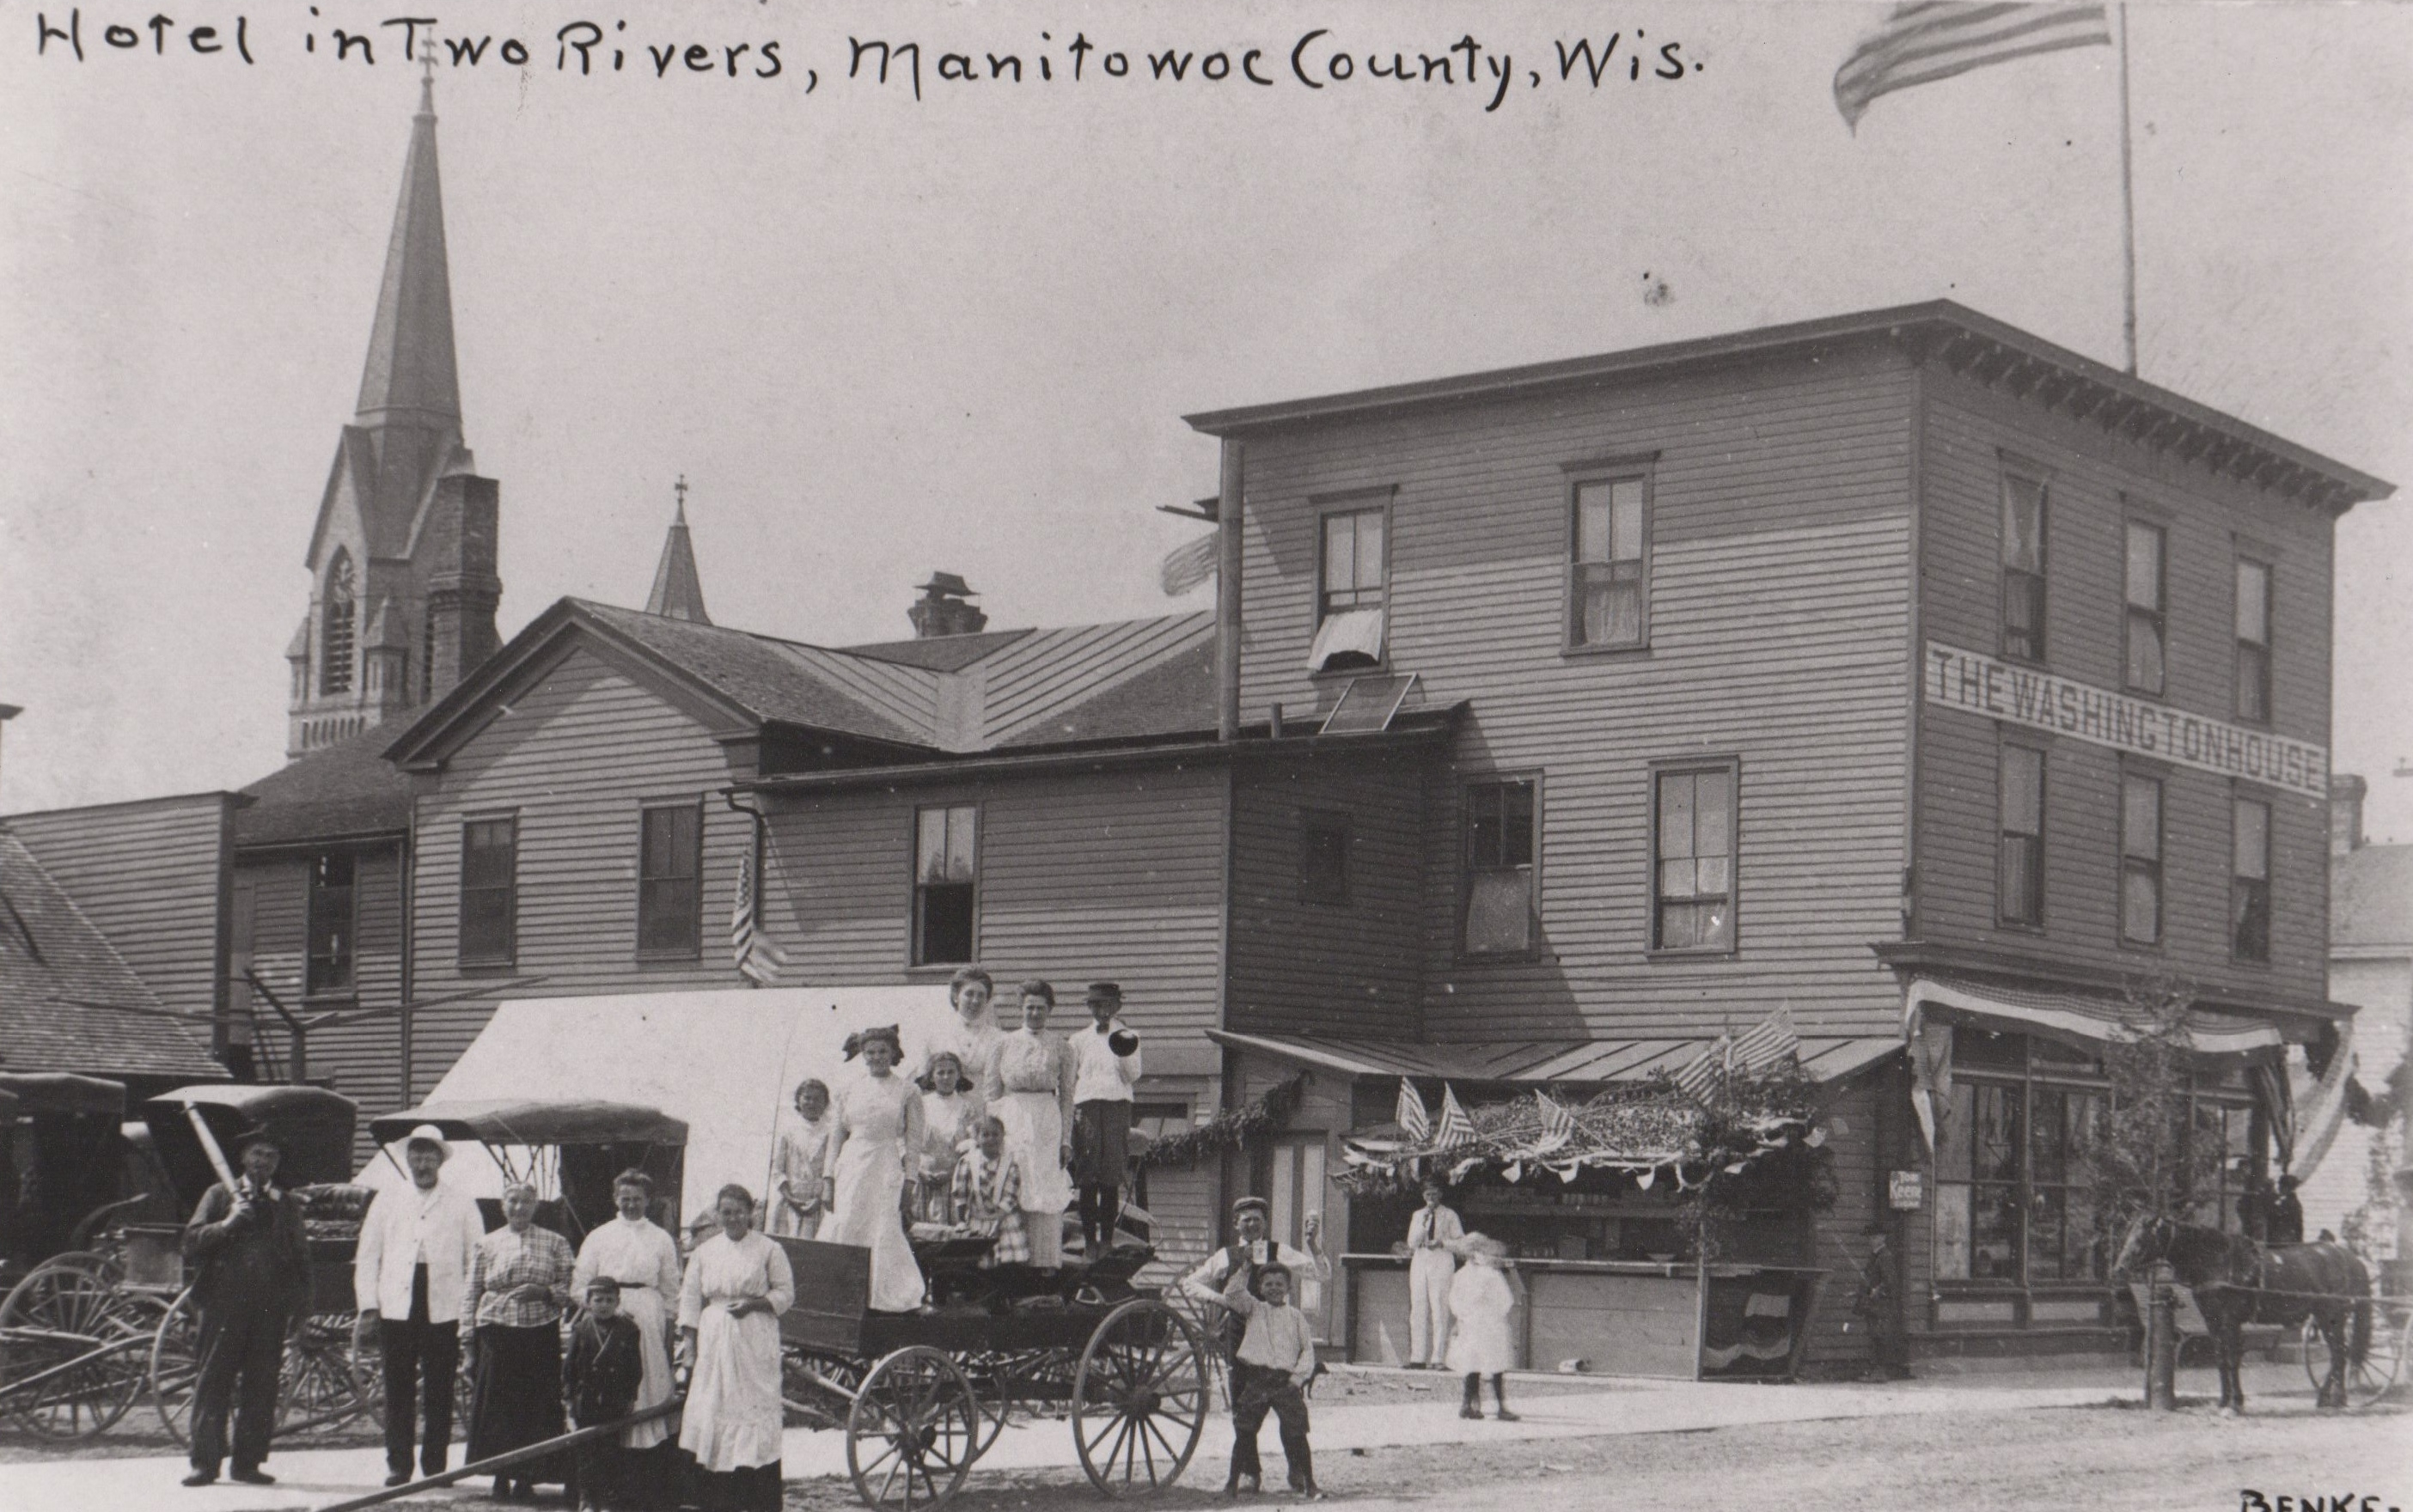 Old Black and White Photo of the Washington House in Two Rivers, WI.